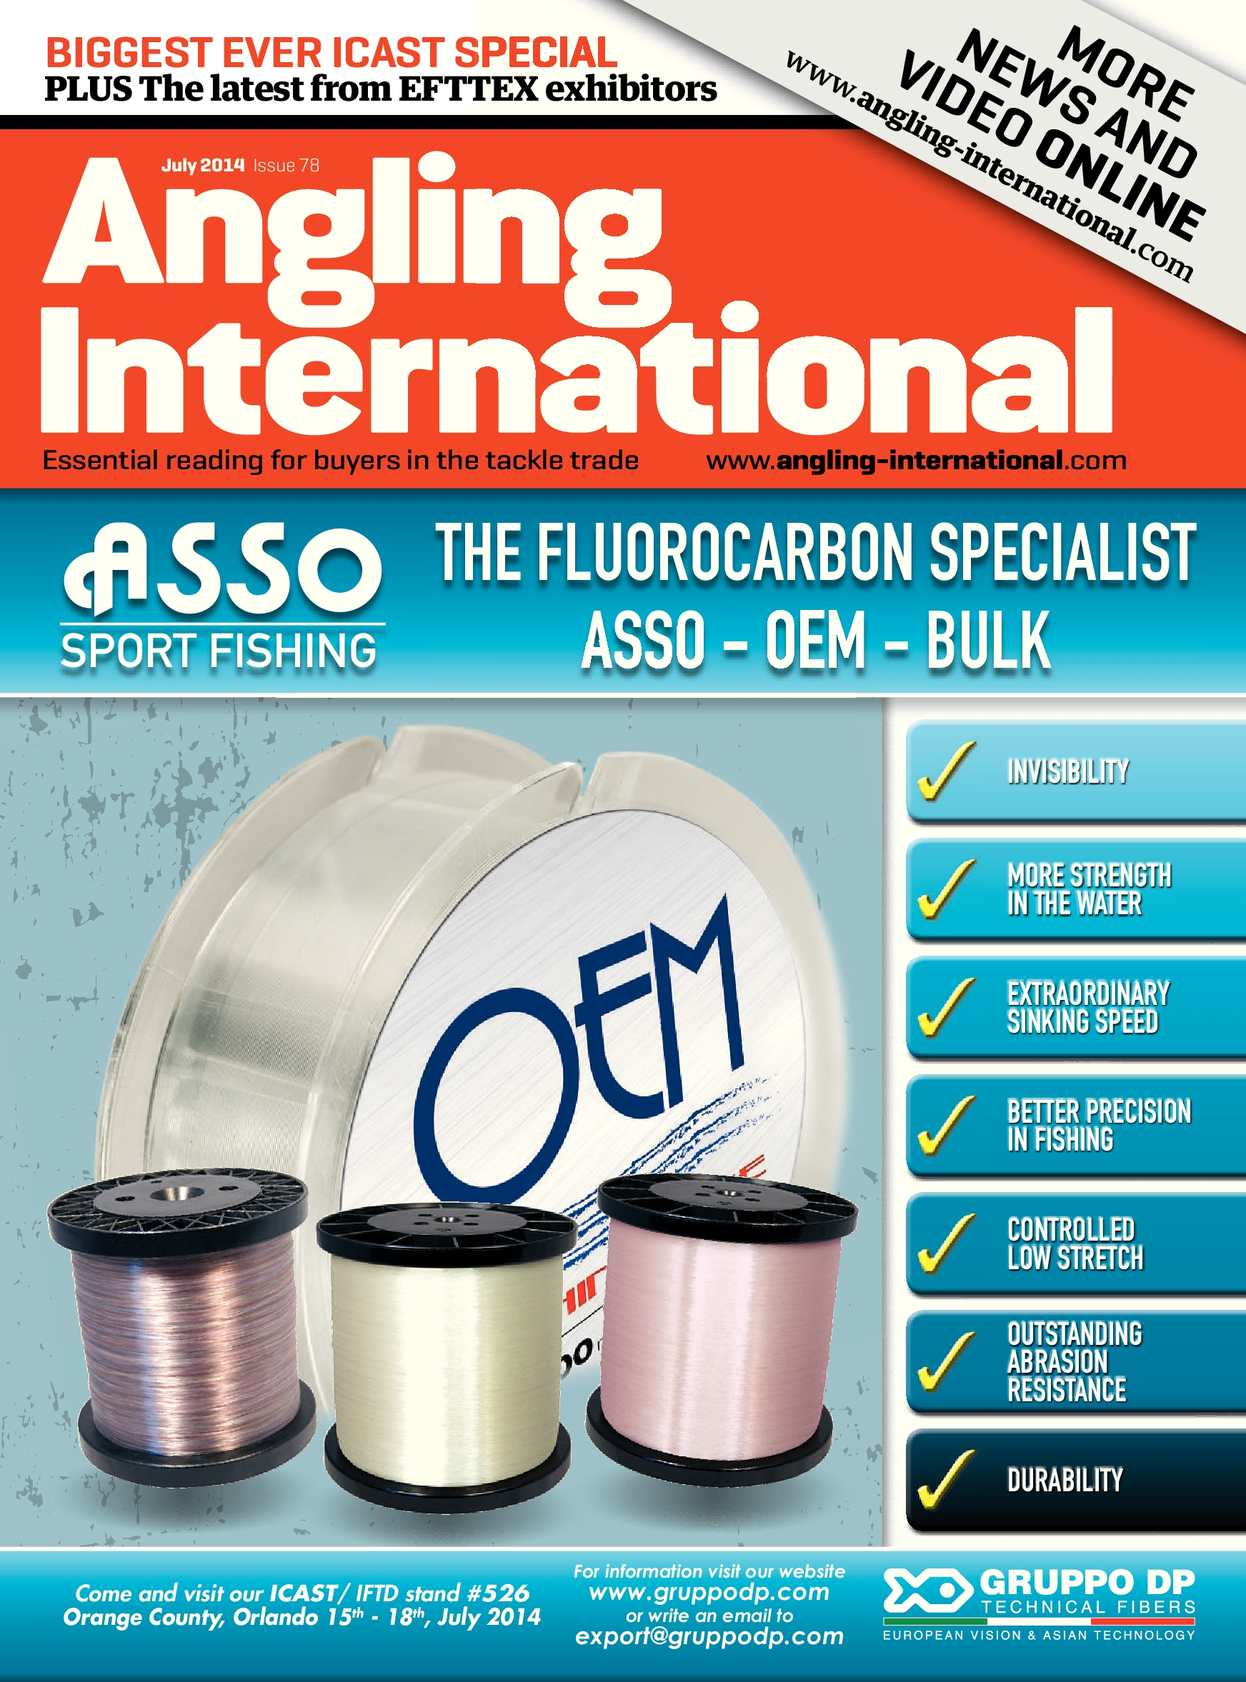 Calaméo - Angling International - July 2014 - Issue 78